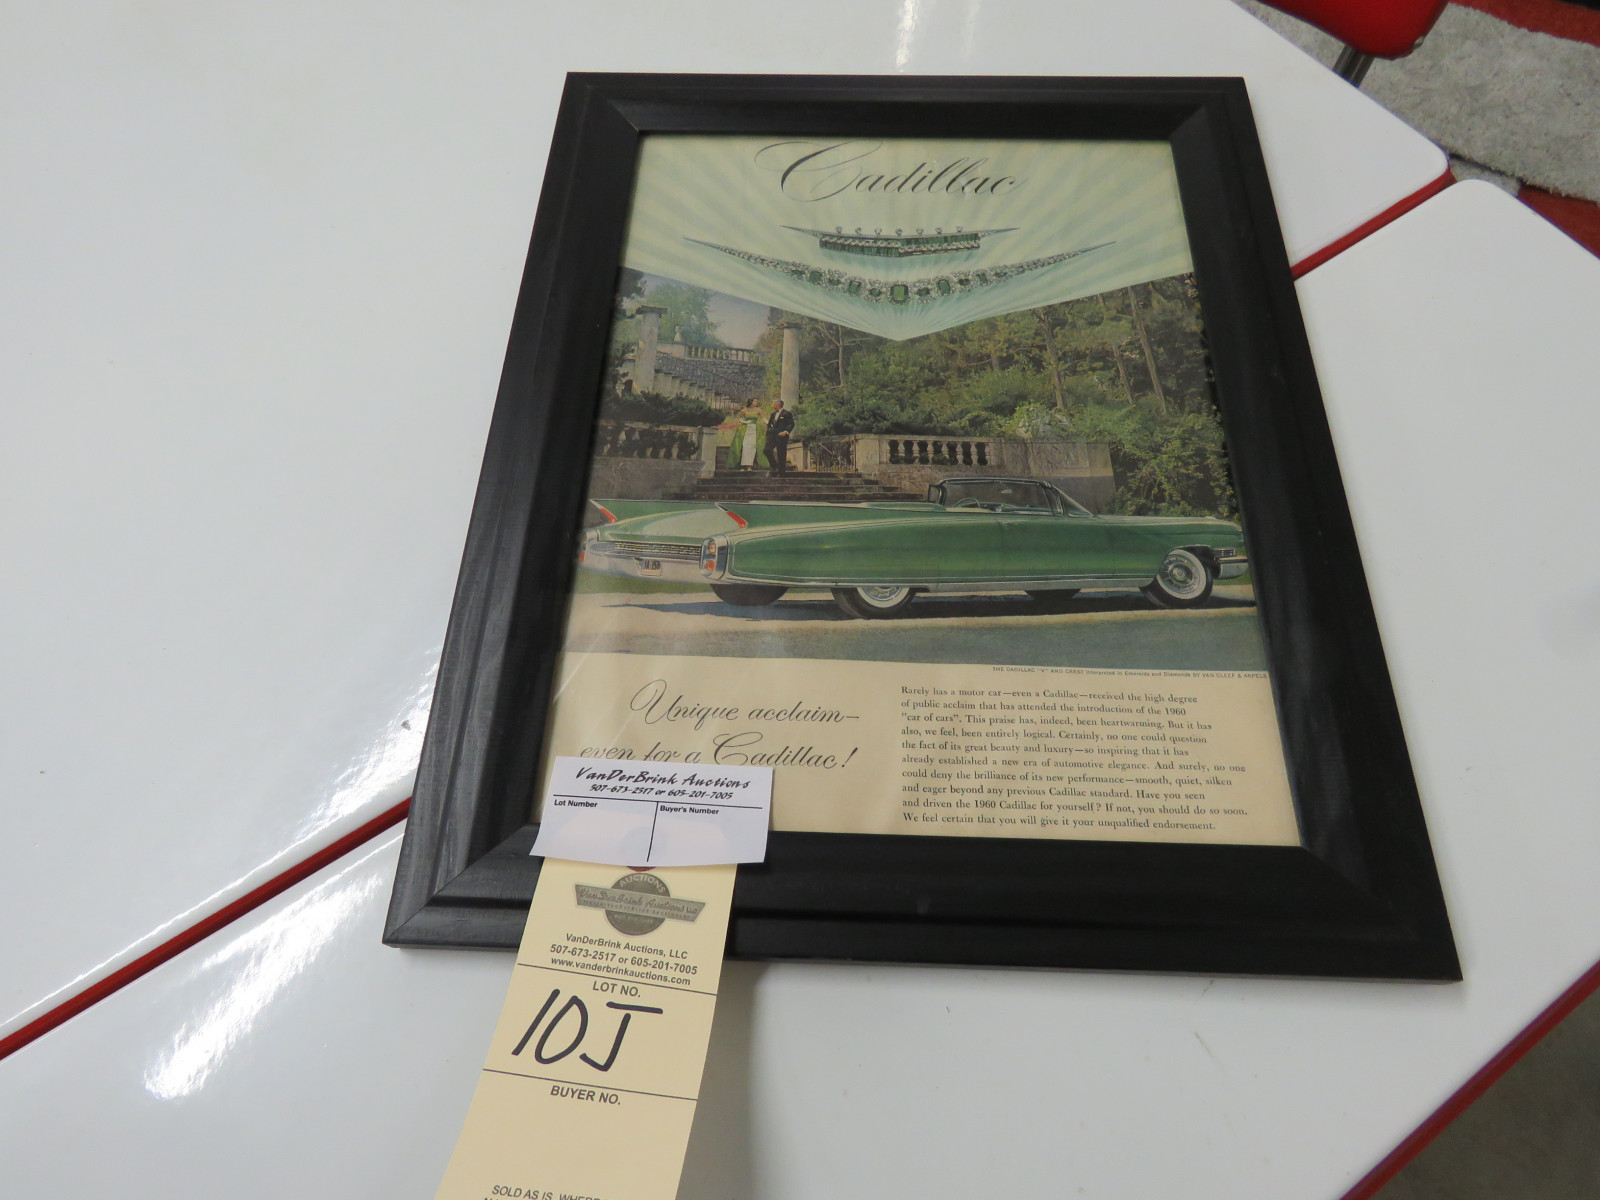 Cadillac Vintage Framed Advertising Piece - Image 1